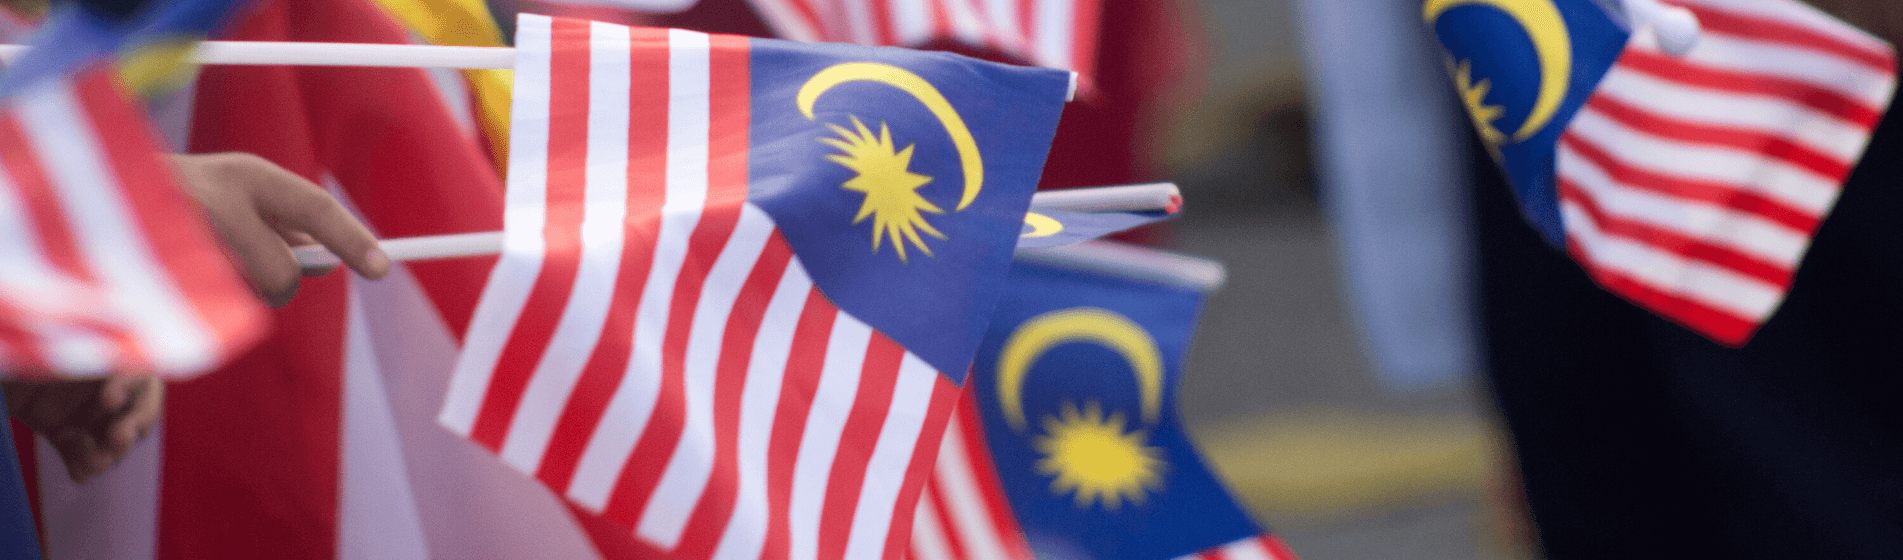 3 new Flag Theory strategies for expats living overseas